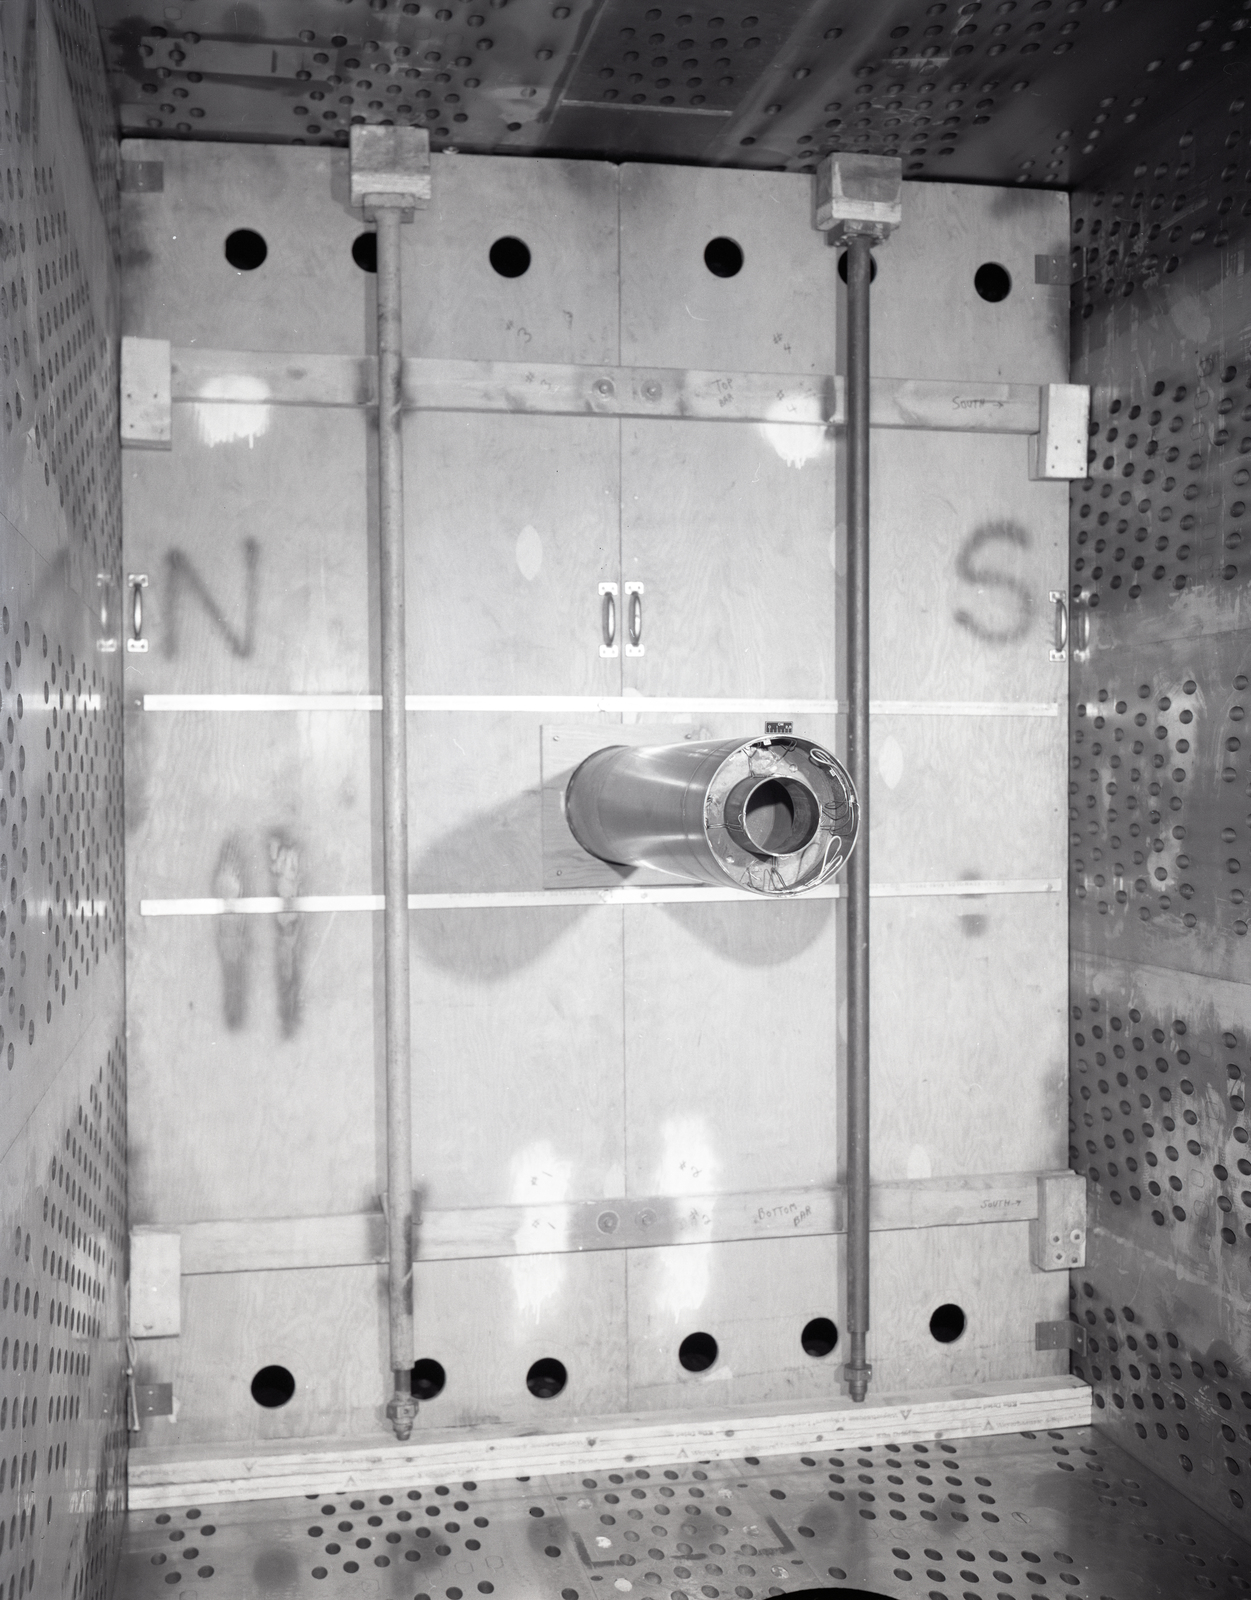 PRATT AND WHITNEY P&W COANNULAR NOZZLE MODEL IN THE 8X6 FOOT WIND TUNNEL